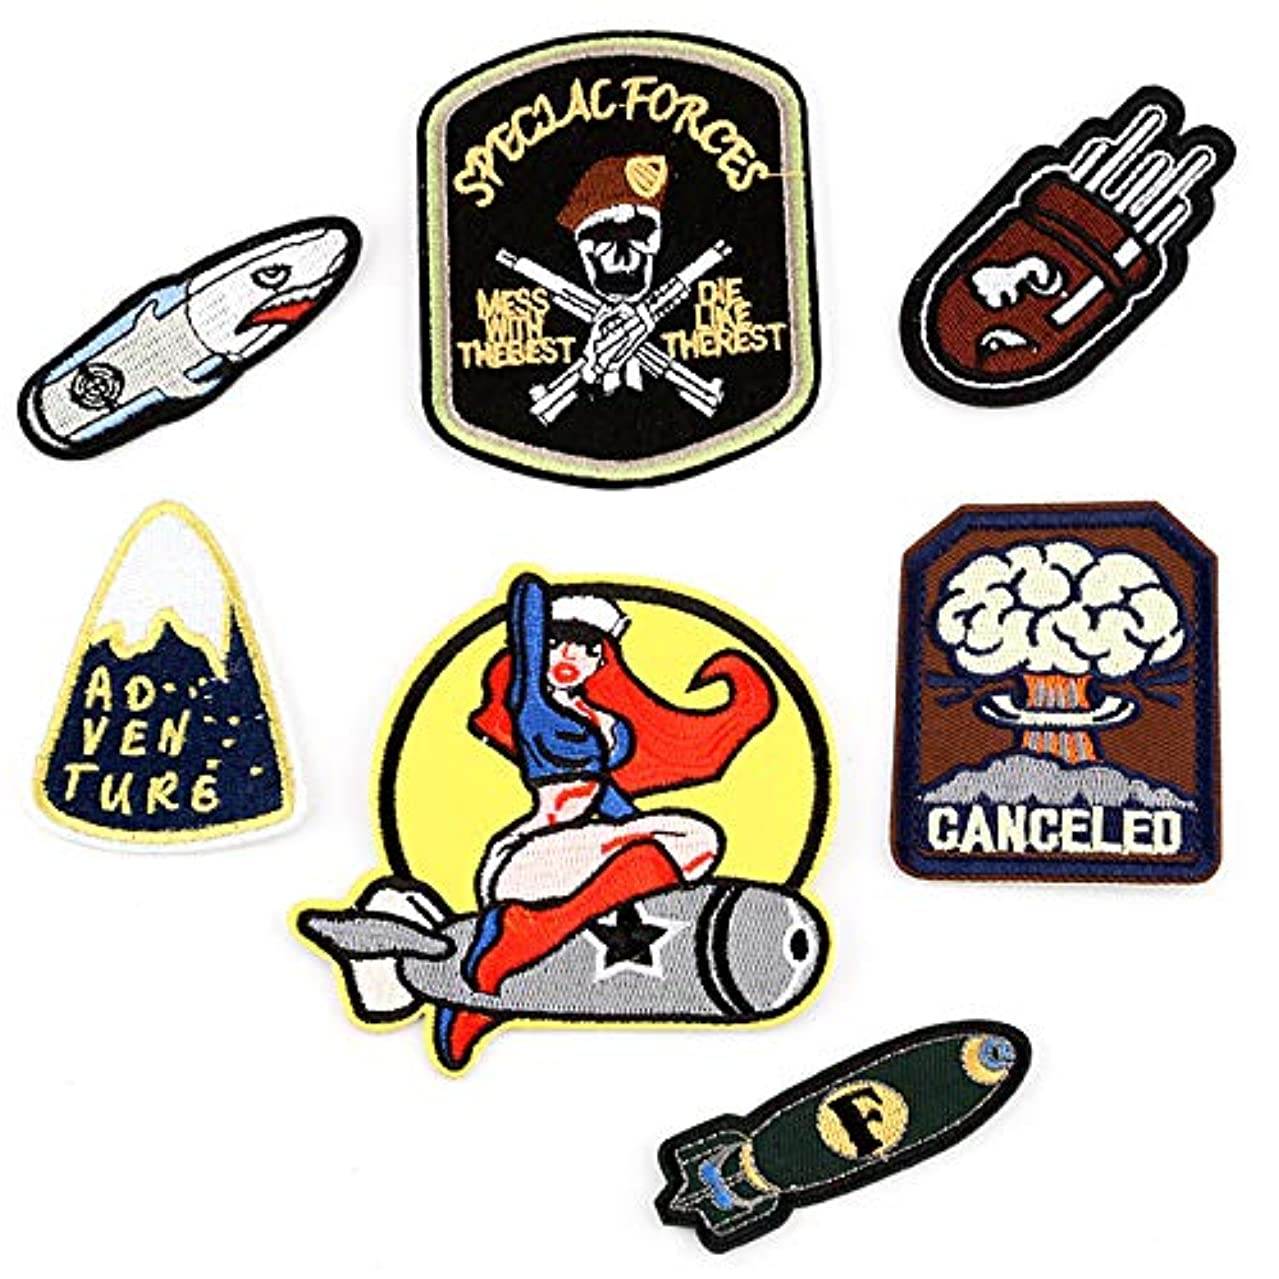 Iron On Patches 7 Pcs, Individuality Embroidered Patches with Iron, Embroidery Applique DIY Accessories Motif Applique Kit Sew On Patches for Jackets, Jeans, Clothing, Backpacks